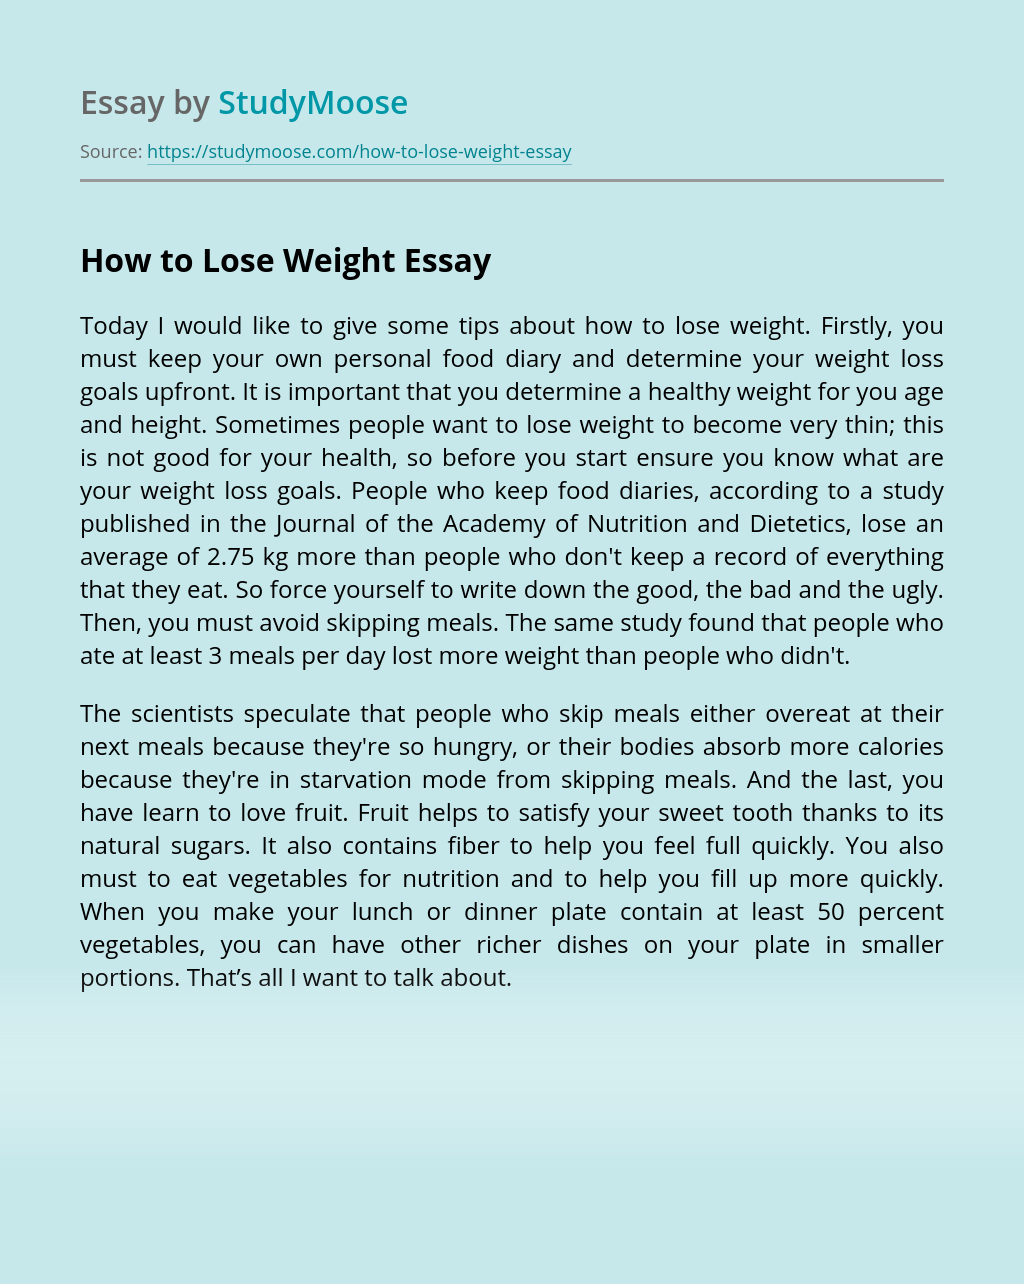 Some tips about how to lose weight